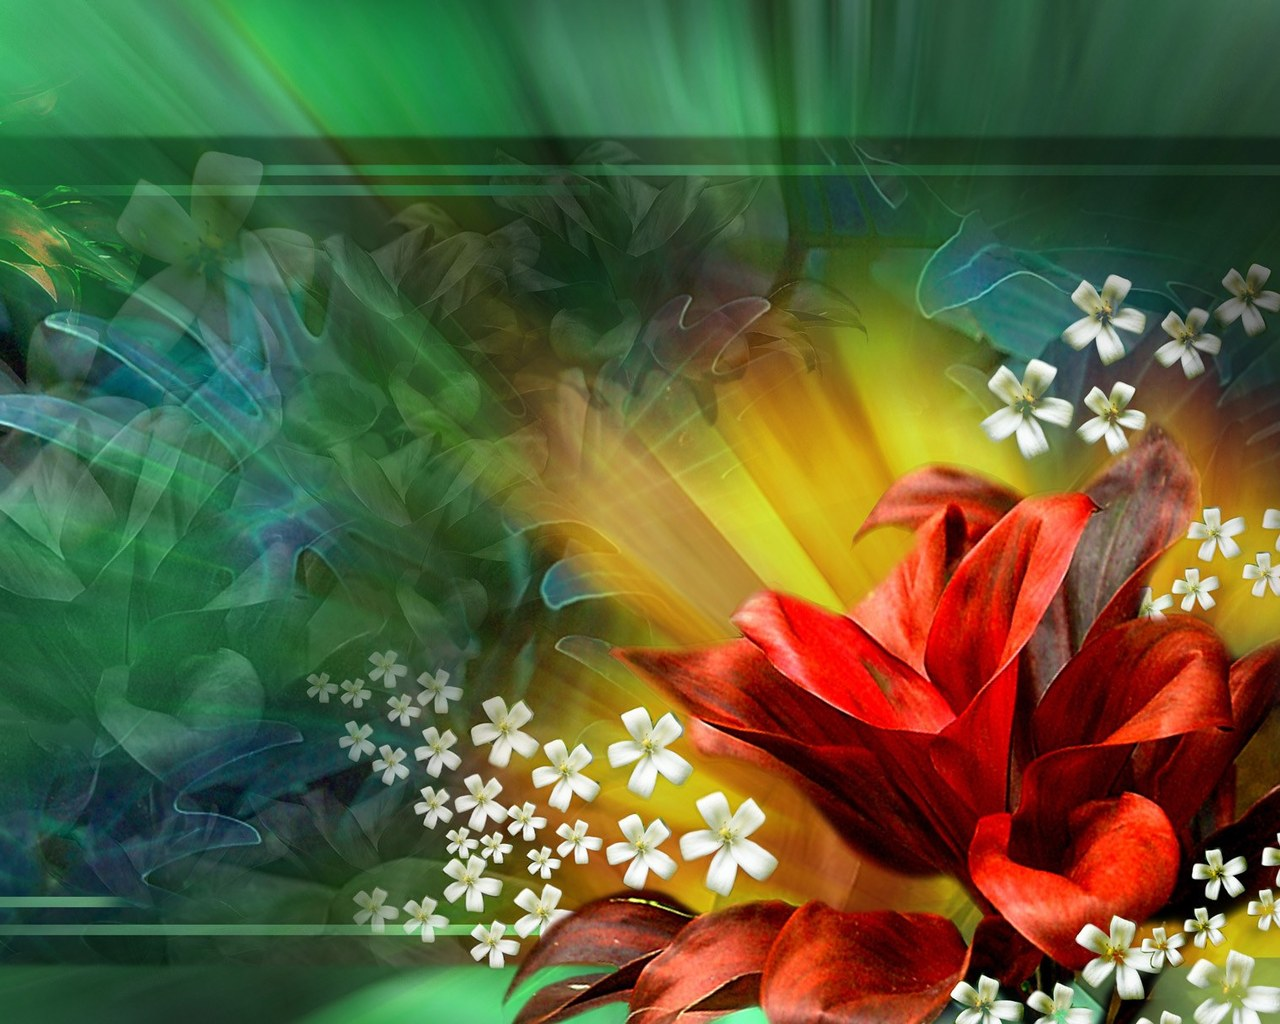 Download Animated Desktop Wallpaper Animated Backgrounds for 1280x1024